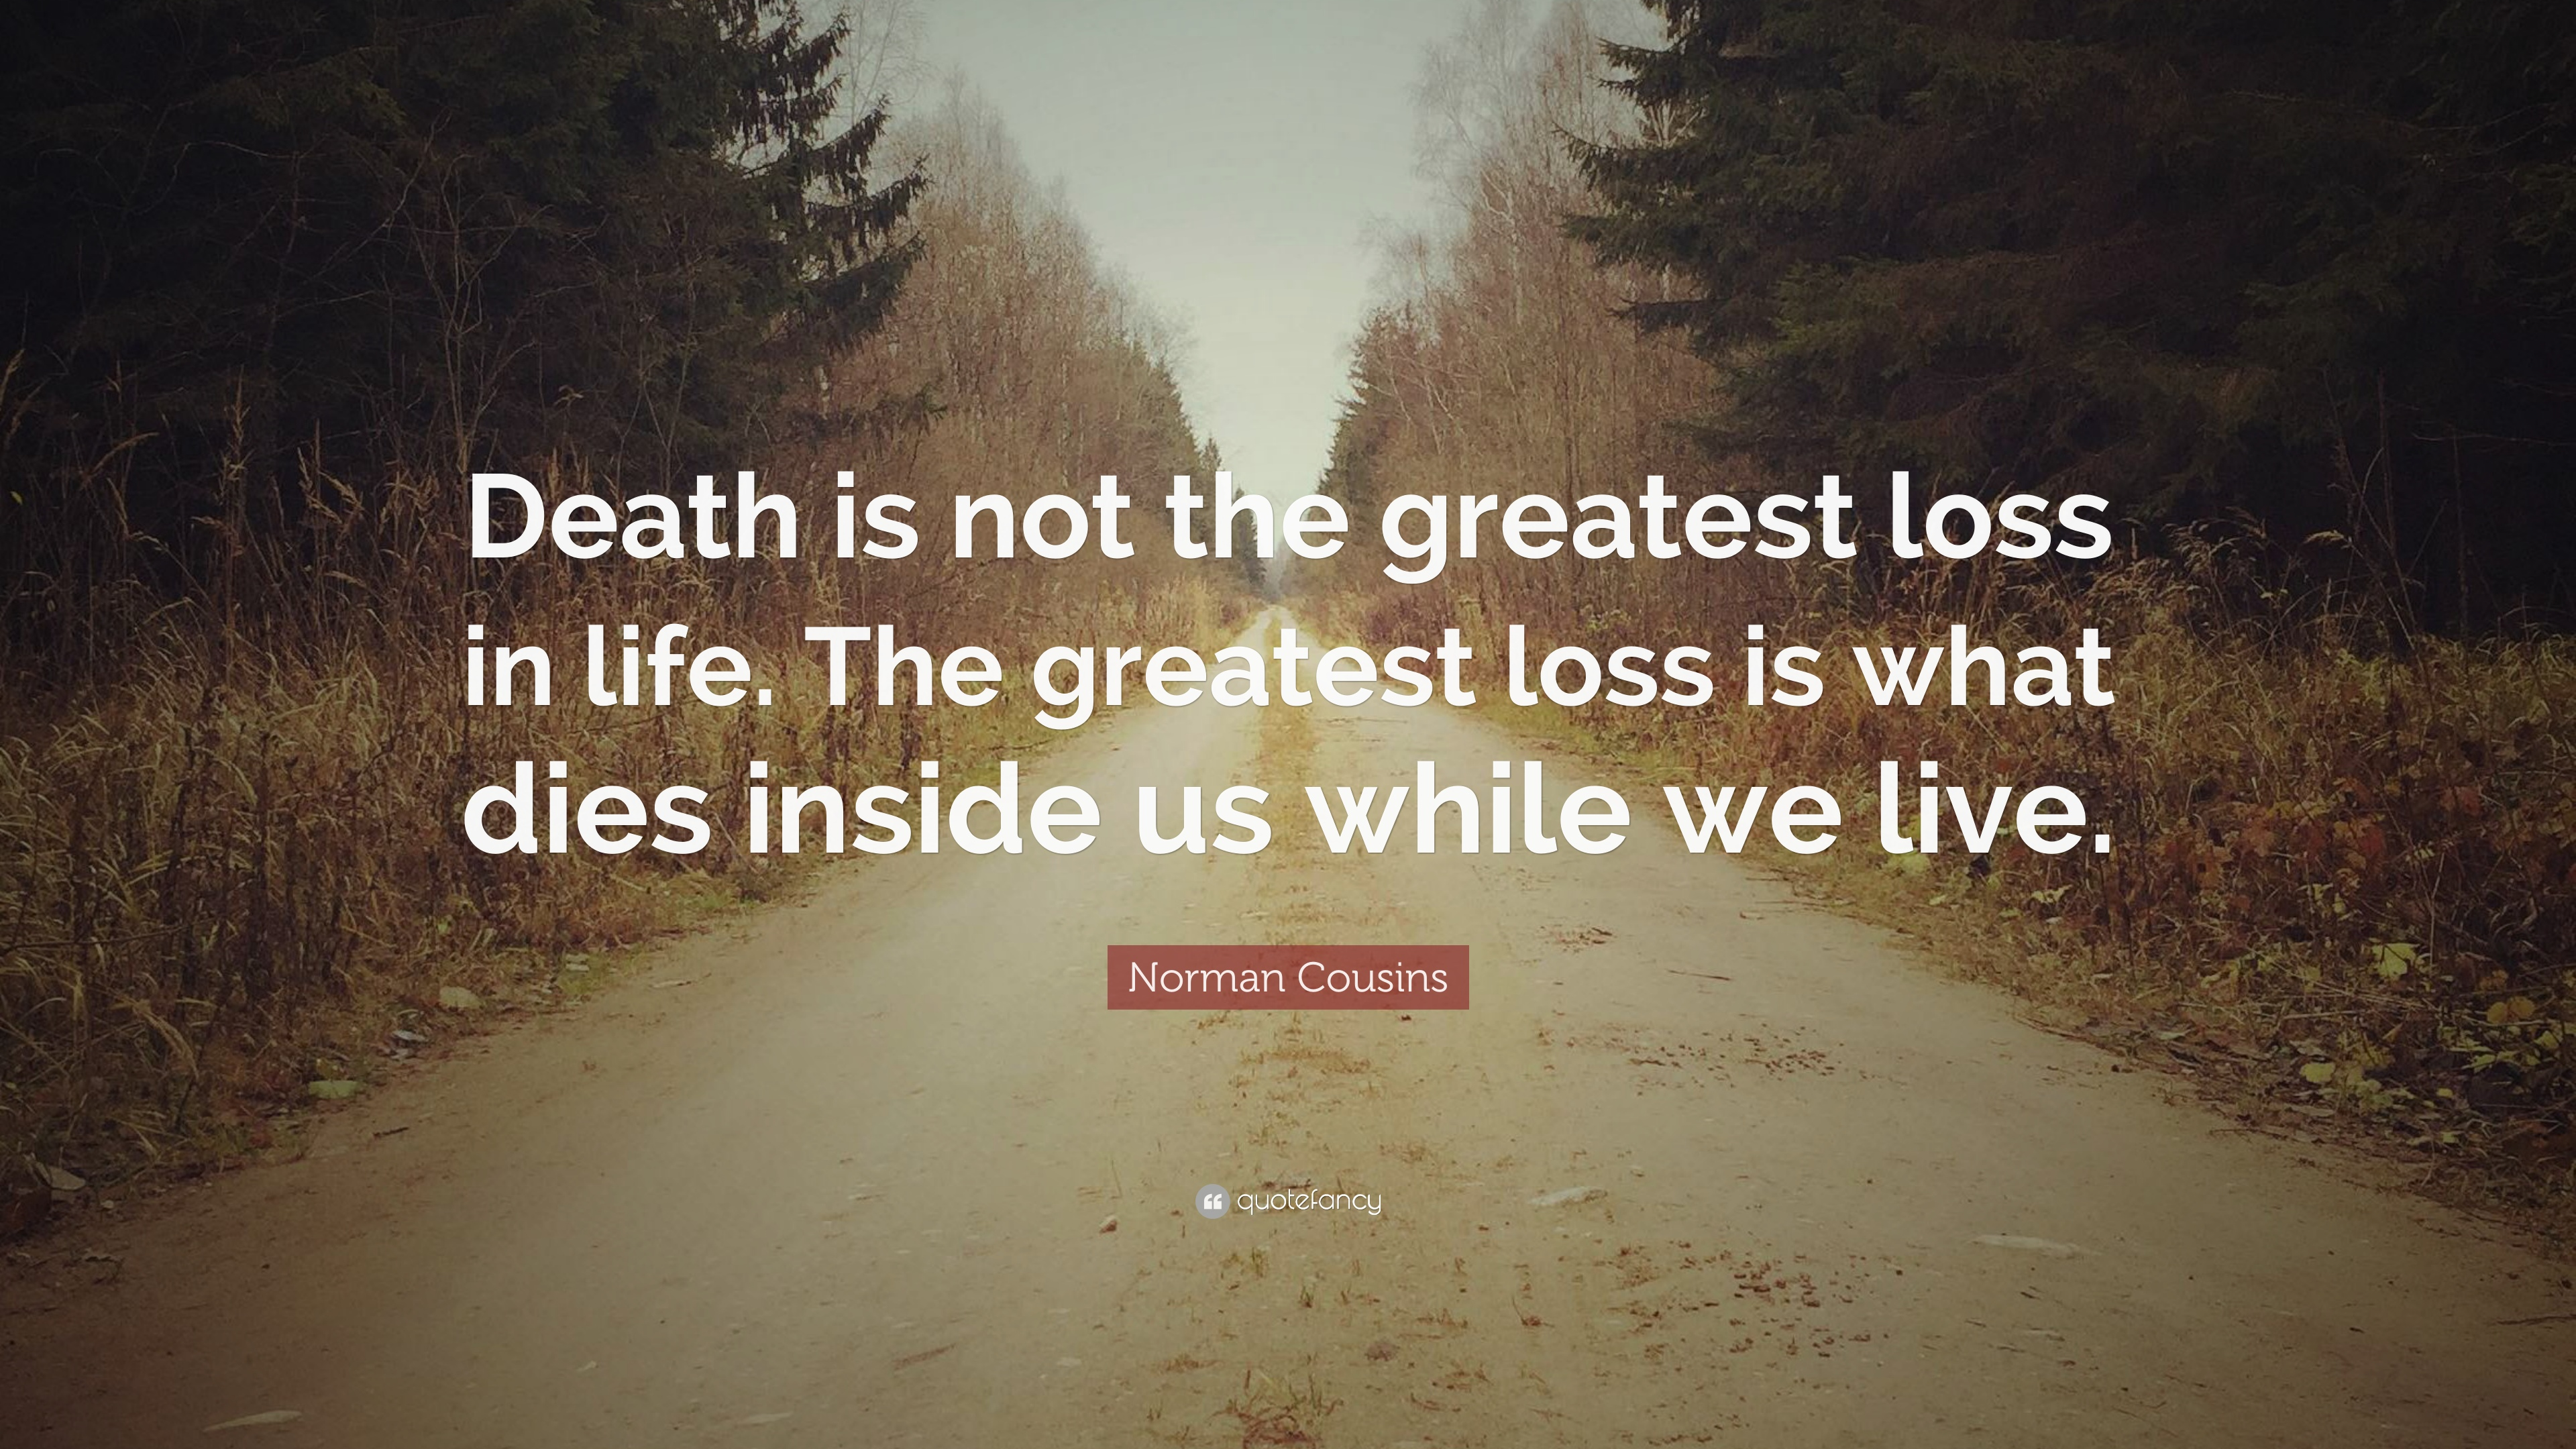 Genial Norman Cousins Quote: U201cDeath Is Not The Greatest Loss In Life. The Greatest